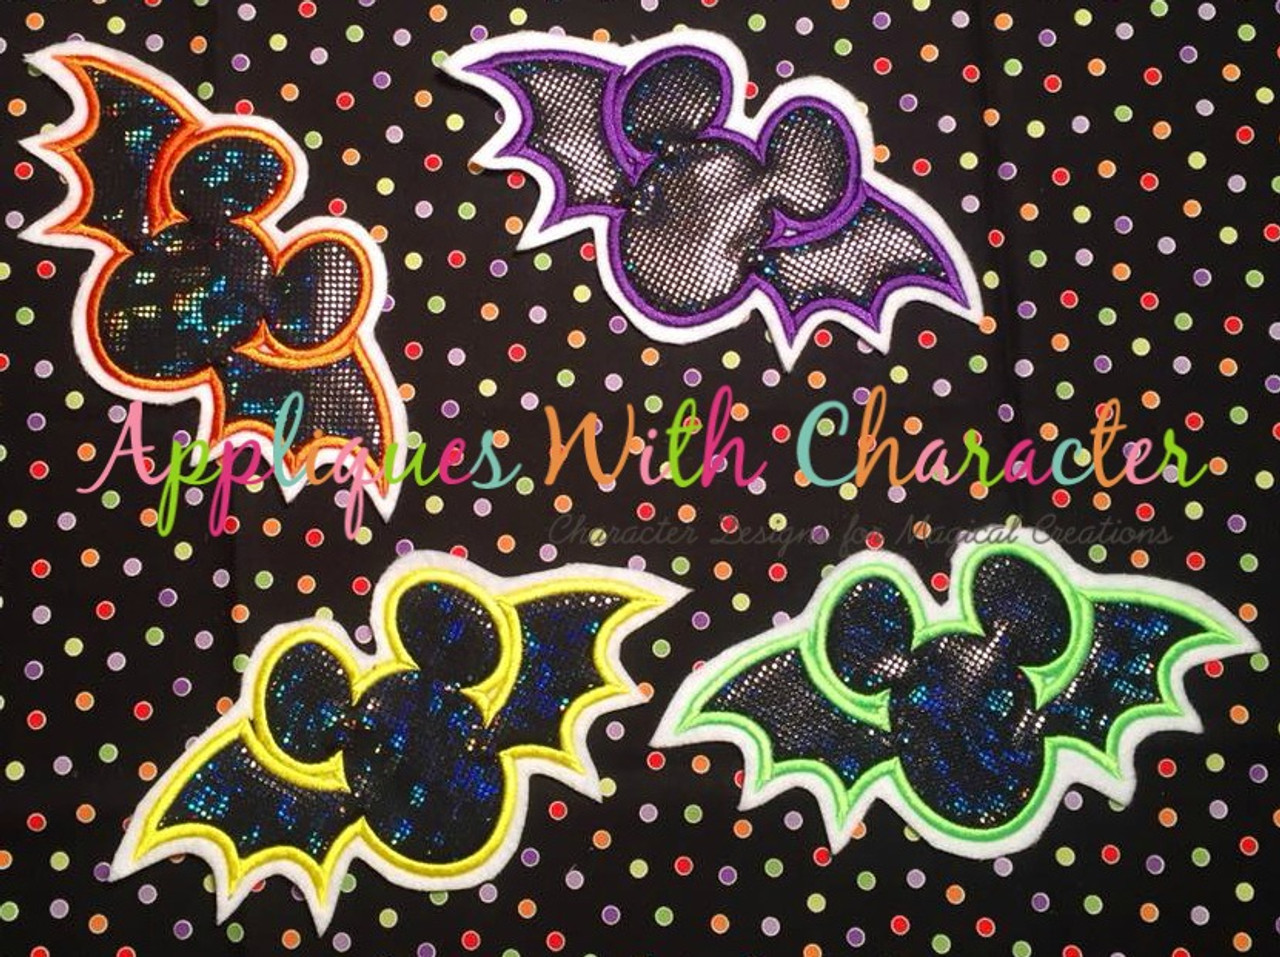 Mickey bat halloween applique design by appliques with character